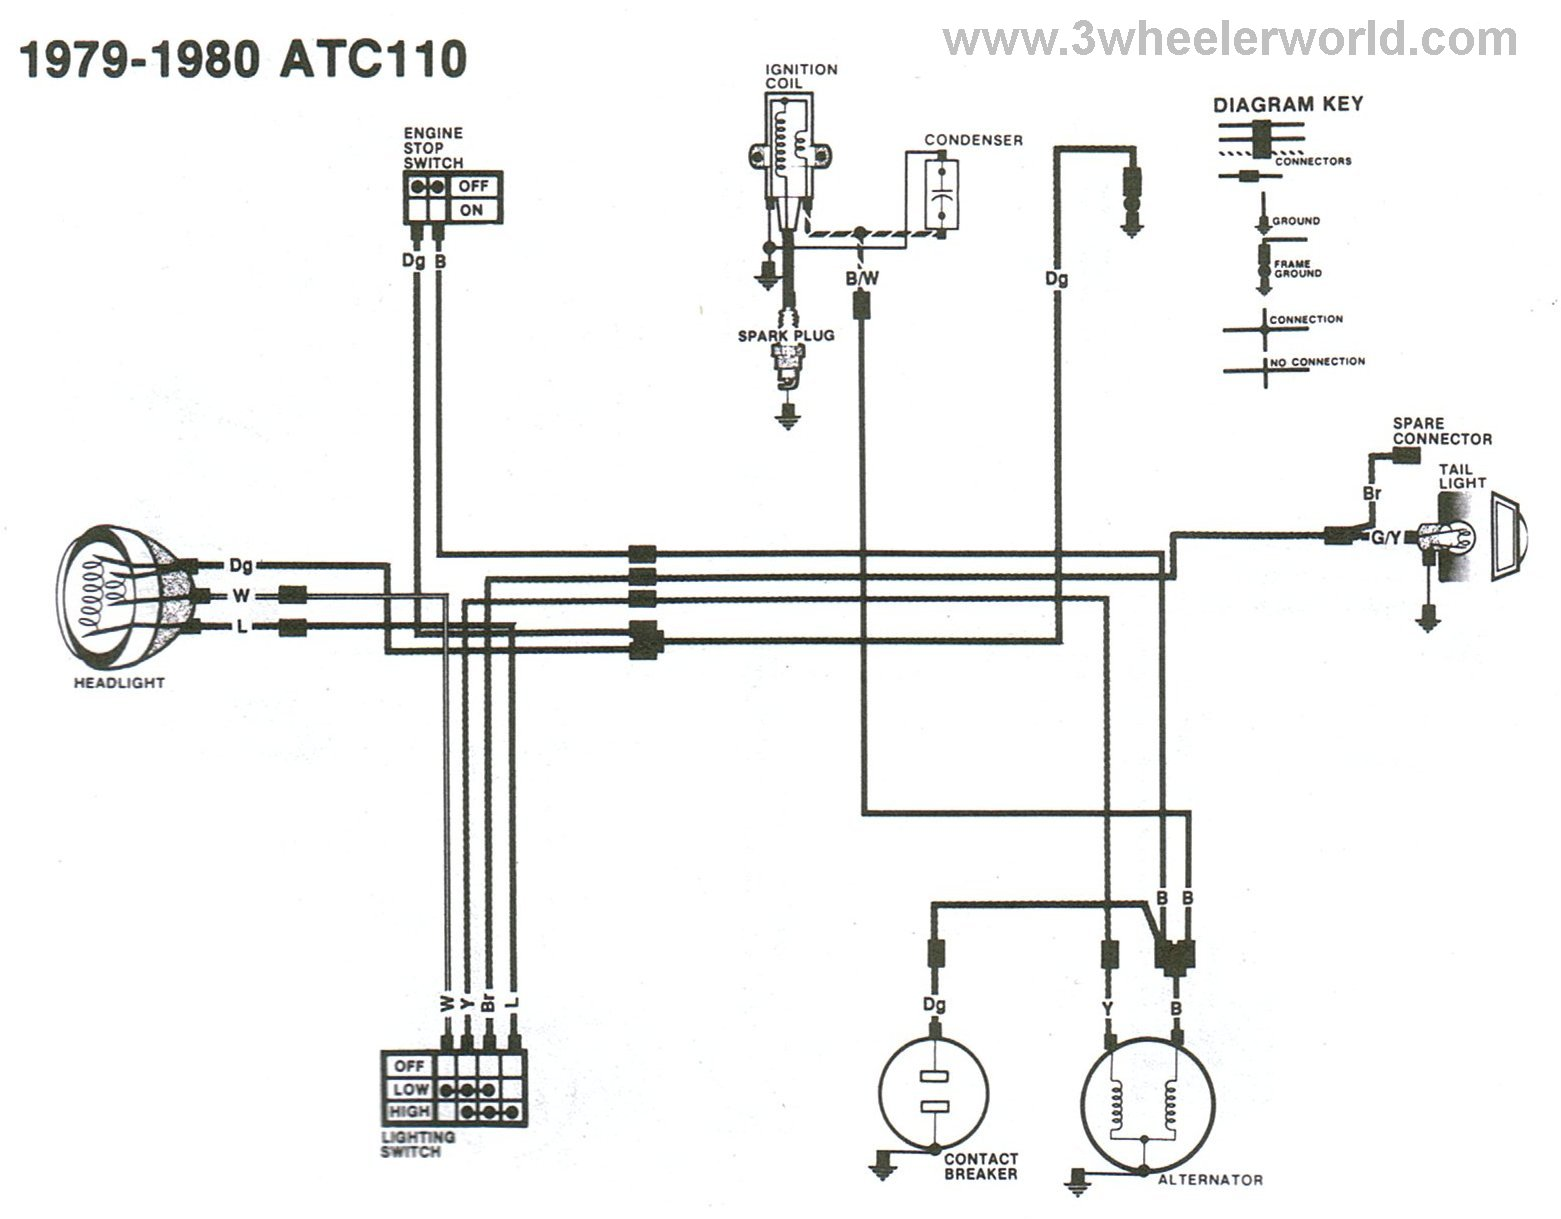 Honda ATC 110 Wiring Diagram on yamaha 110cc 4 wheeler wiring diagram